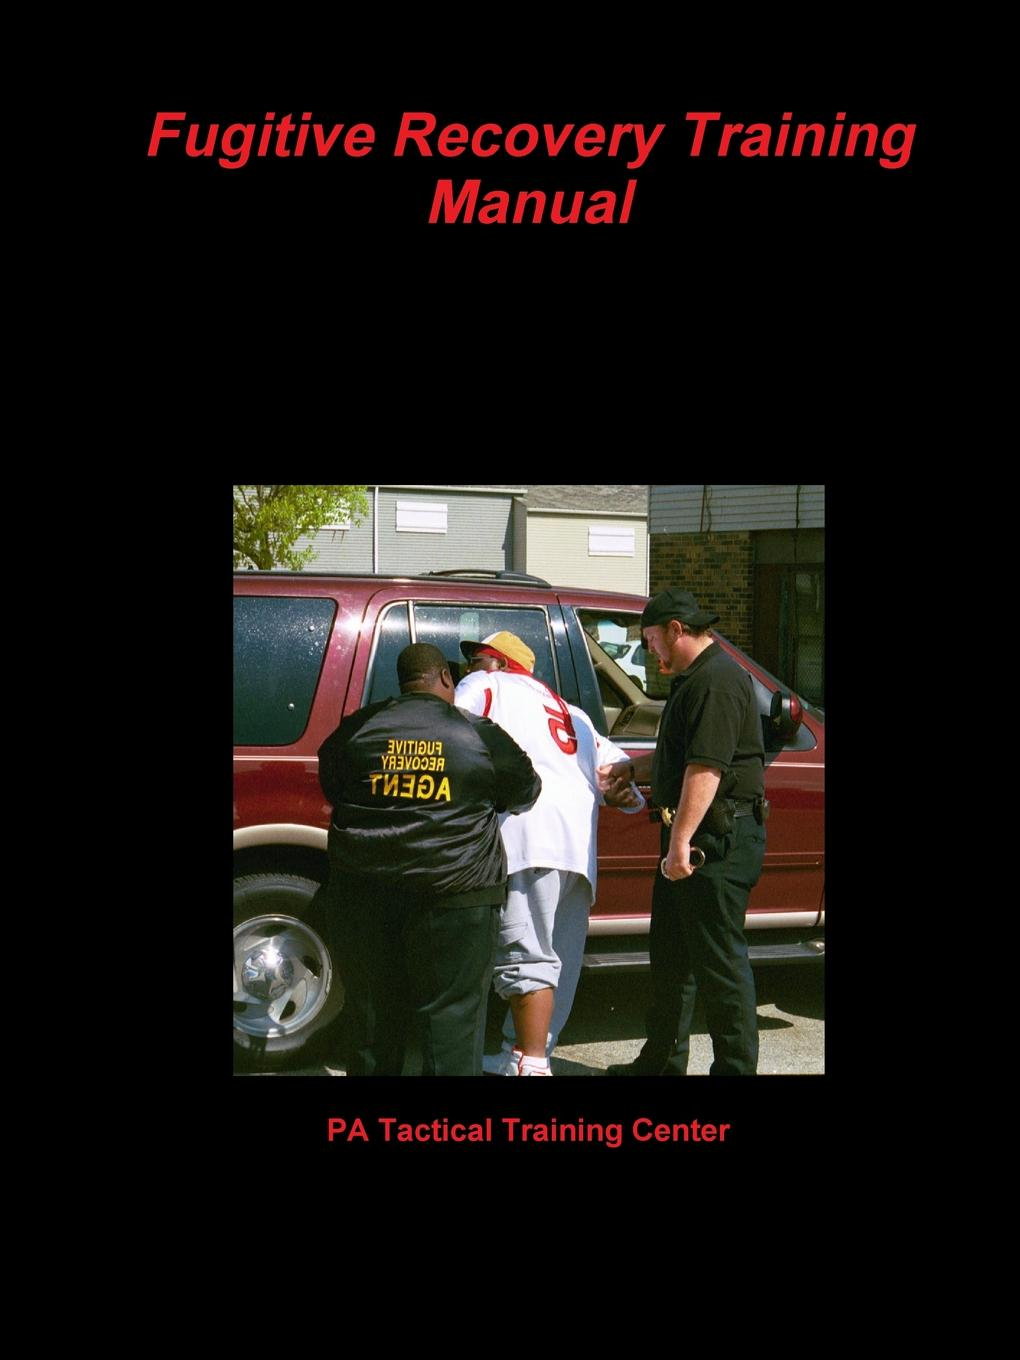 PA Tactical Training Center Fugitive Recovery Training Manual alf h walle recovery the native way a therapist s manual pb